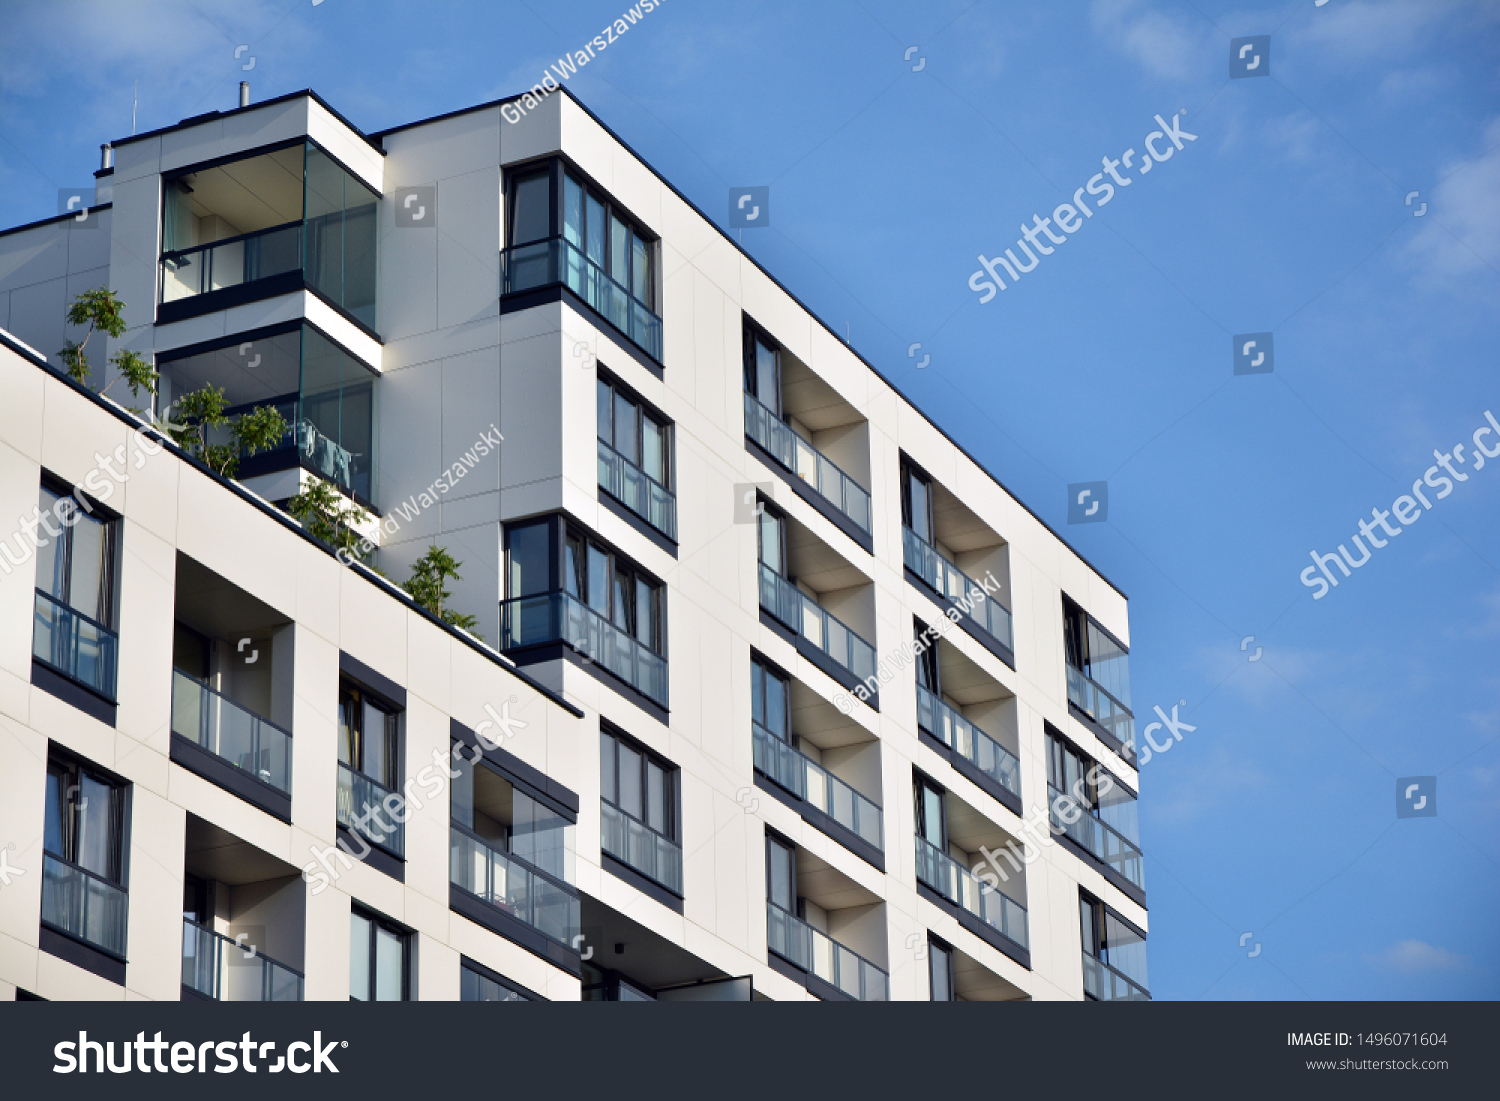 Modern and new apartment building. Multistoried modern, new and stylish living block of flats. #1496071604